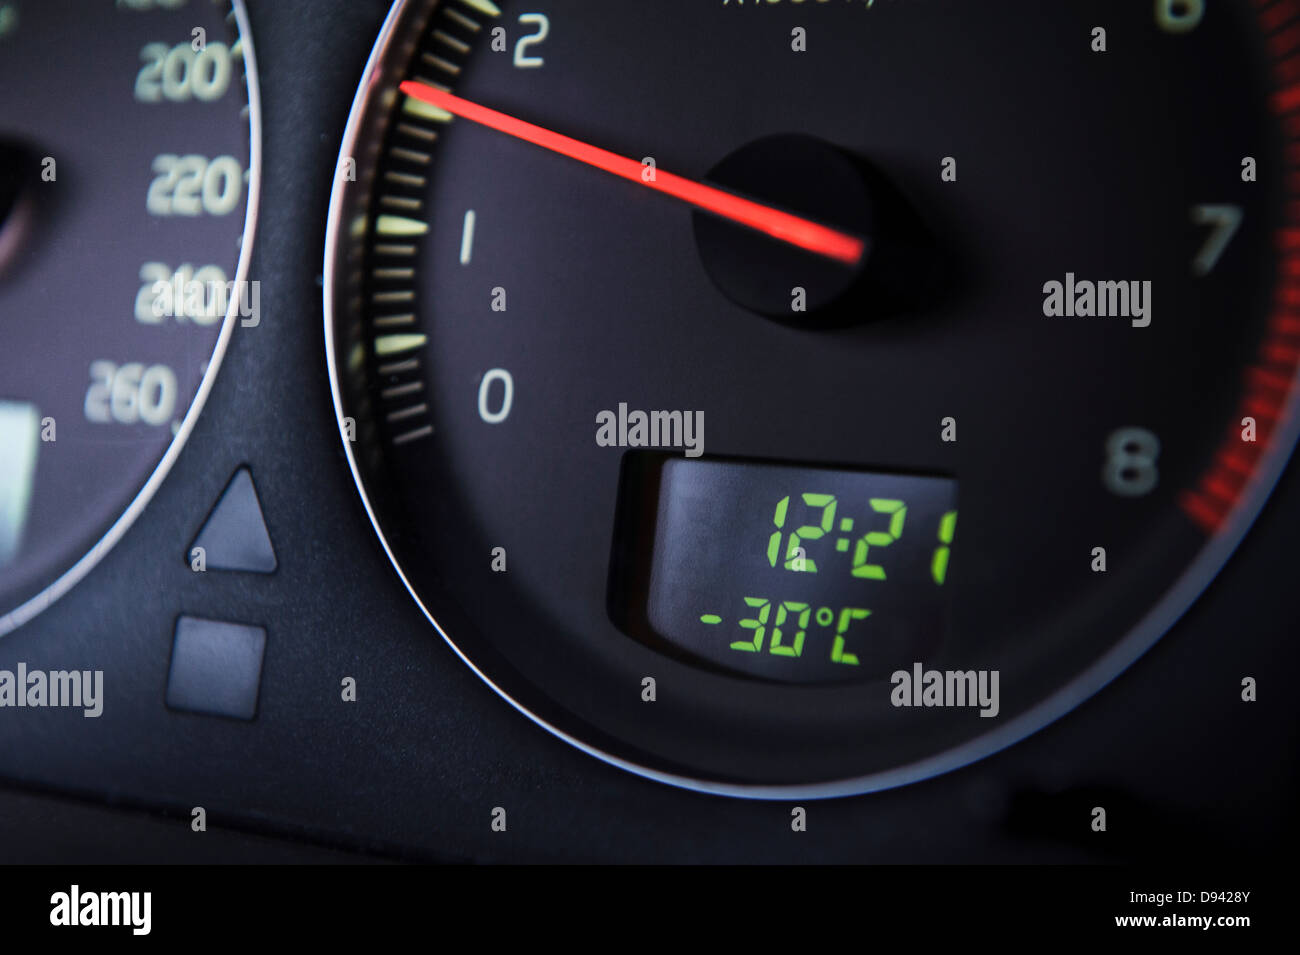 Car Odometer with thermometer reading minus thirty Celsius degrees - Stock Image